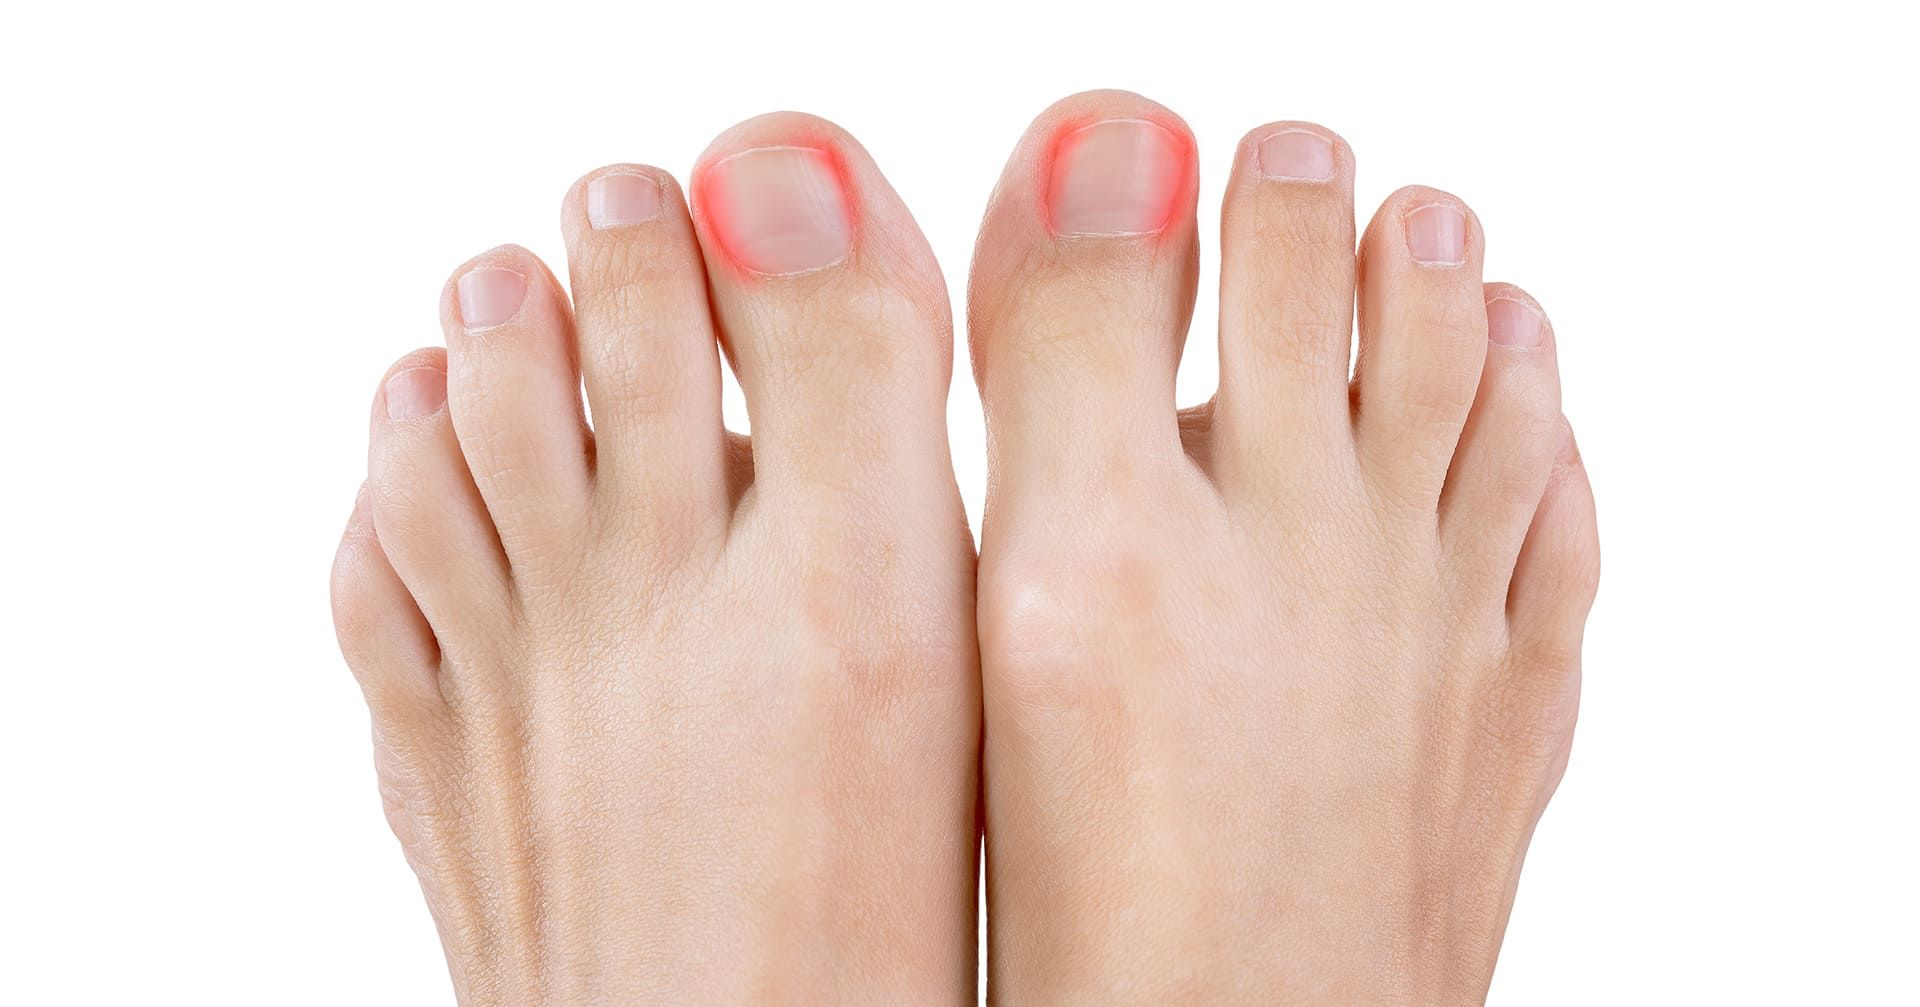 Get Relief from Ingrown nails now!